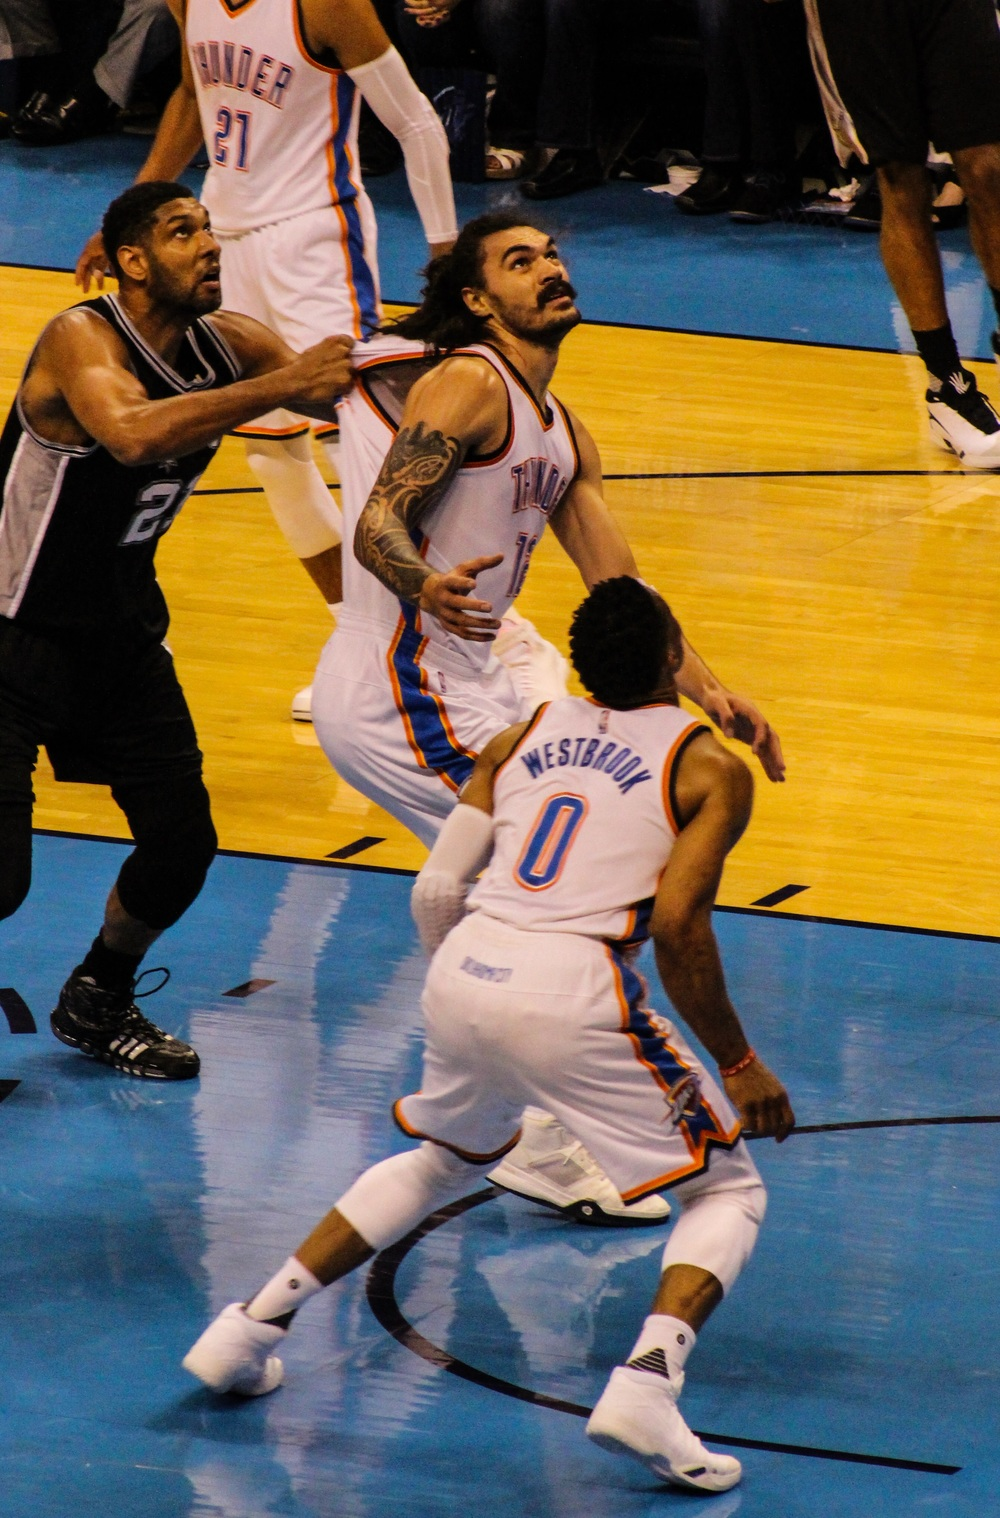 Thunder center Steven Adams has his jersey yanked by Spurs center Tim Duncan during Game 6 of the Western Conference Semi-Finals. (Photo By Sam Murch/InsideThunder.com)